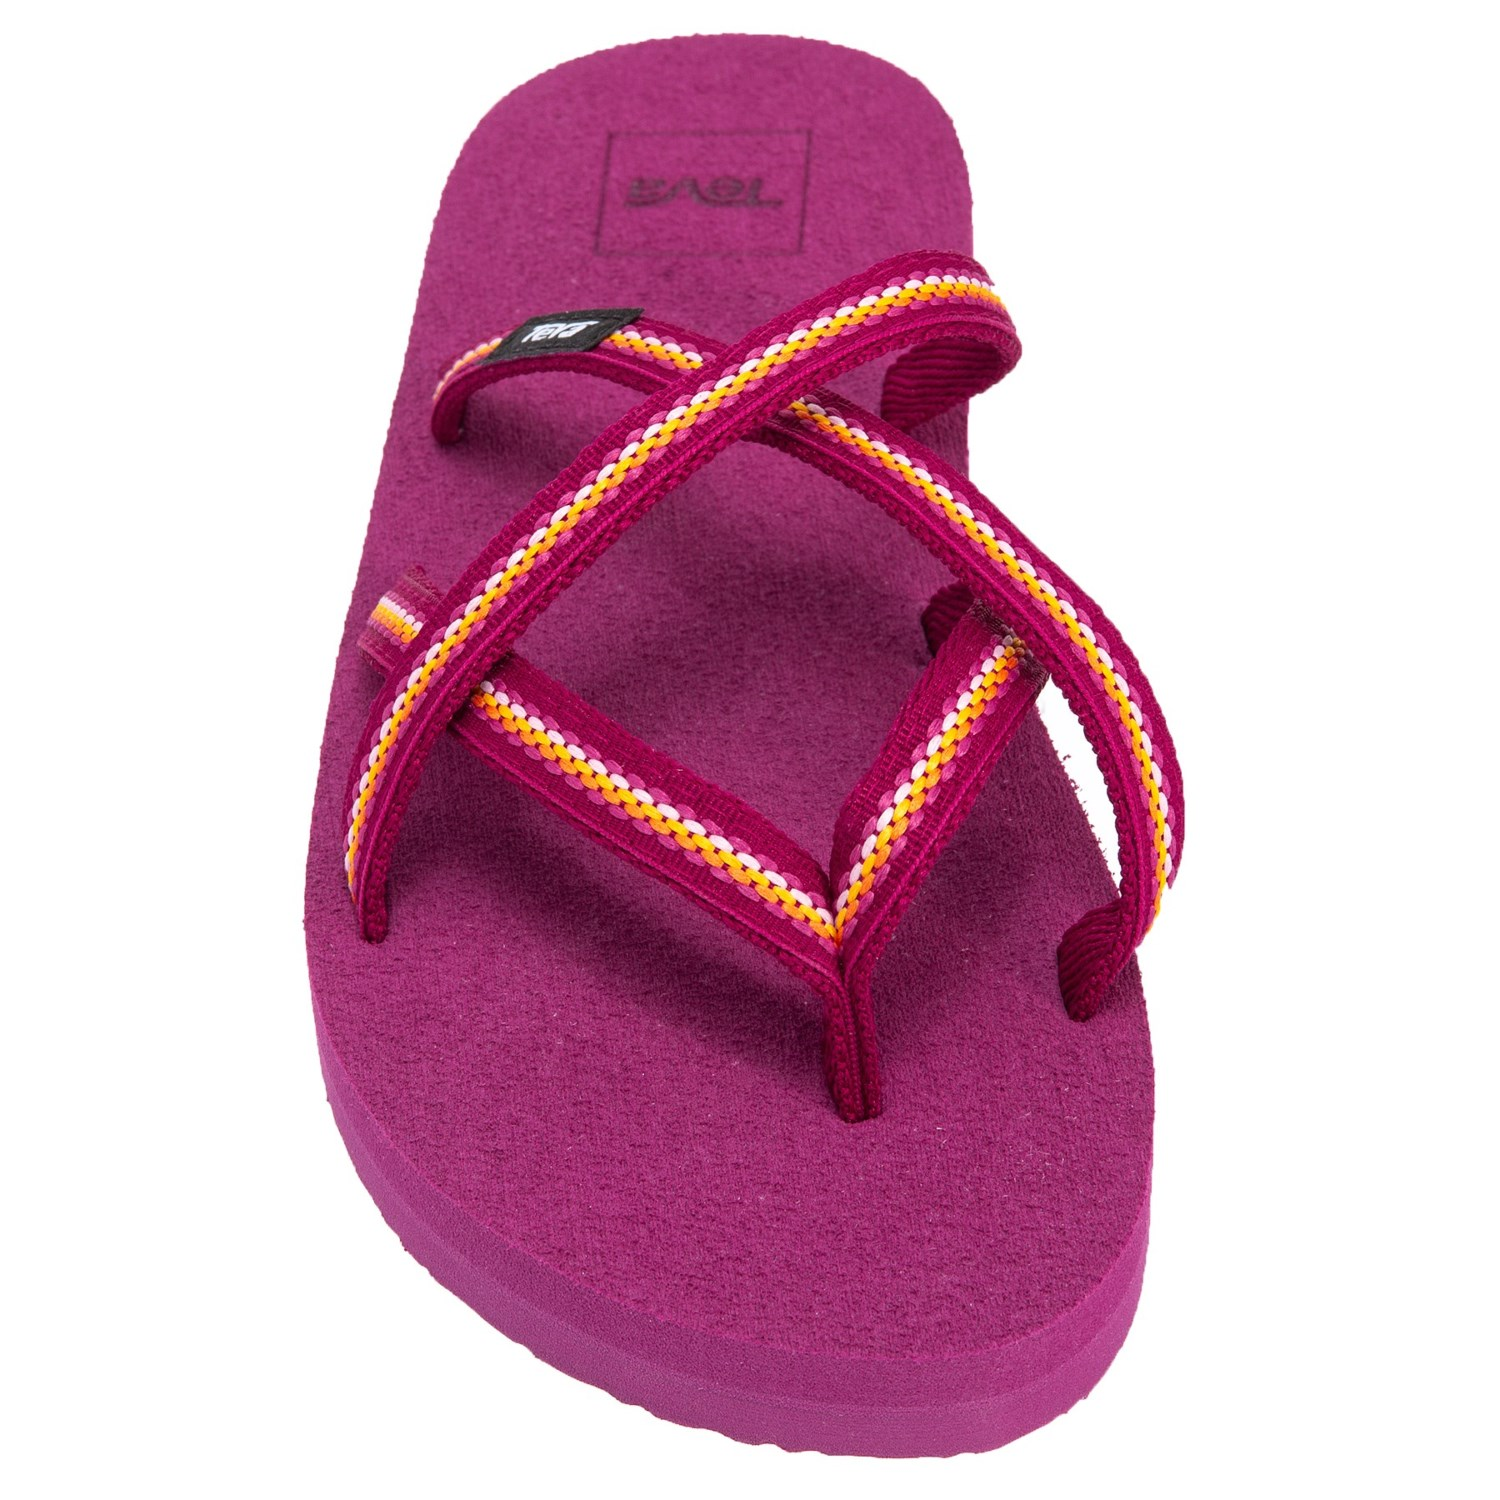 4b1569ff9cdb Teva Olowahu Flip-Flops (For Girls) - Save 23%